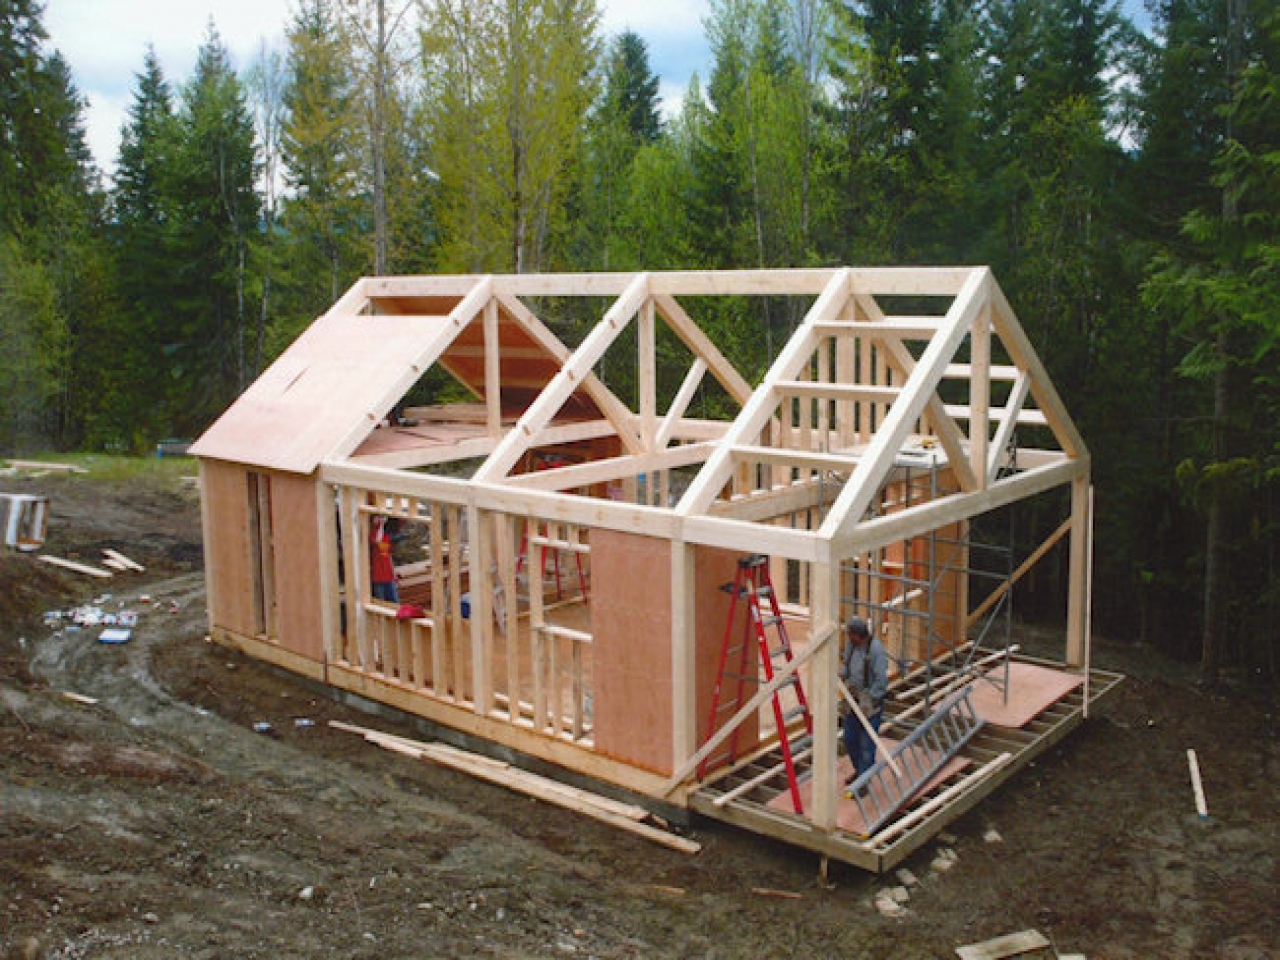 Small Timber Frame Cabin Kits Small Cabin Plans, Timber